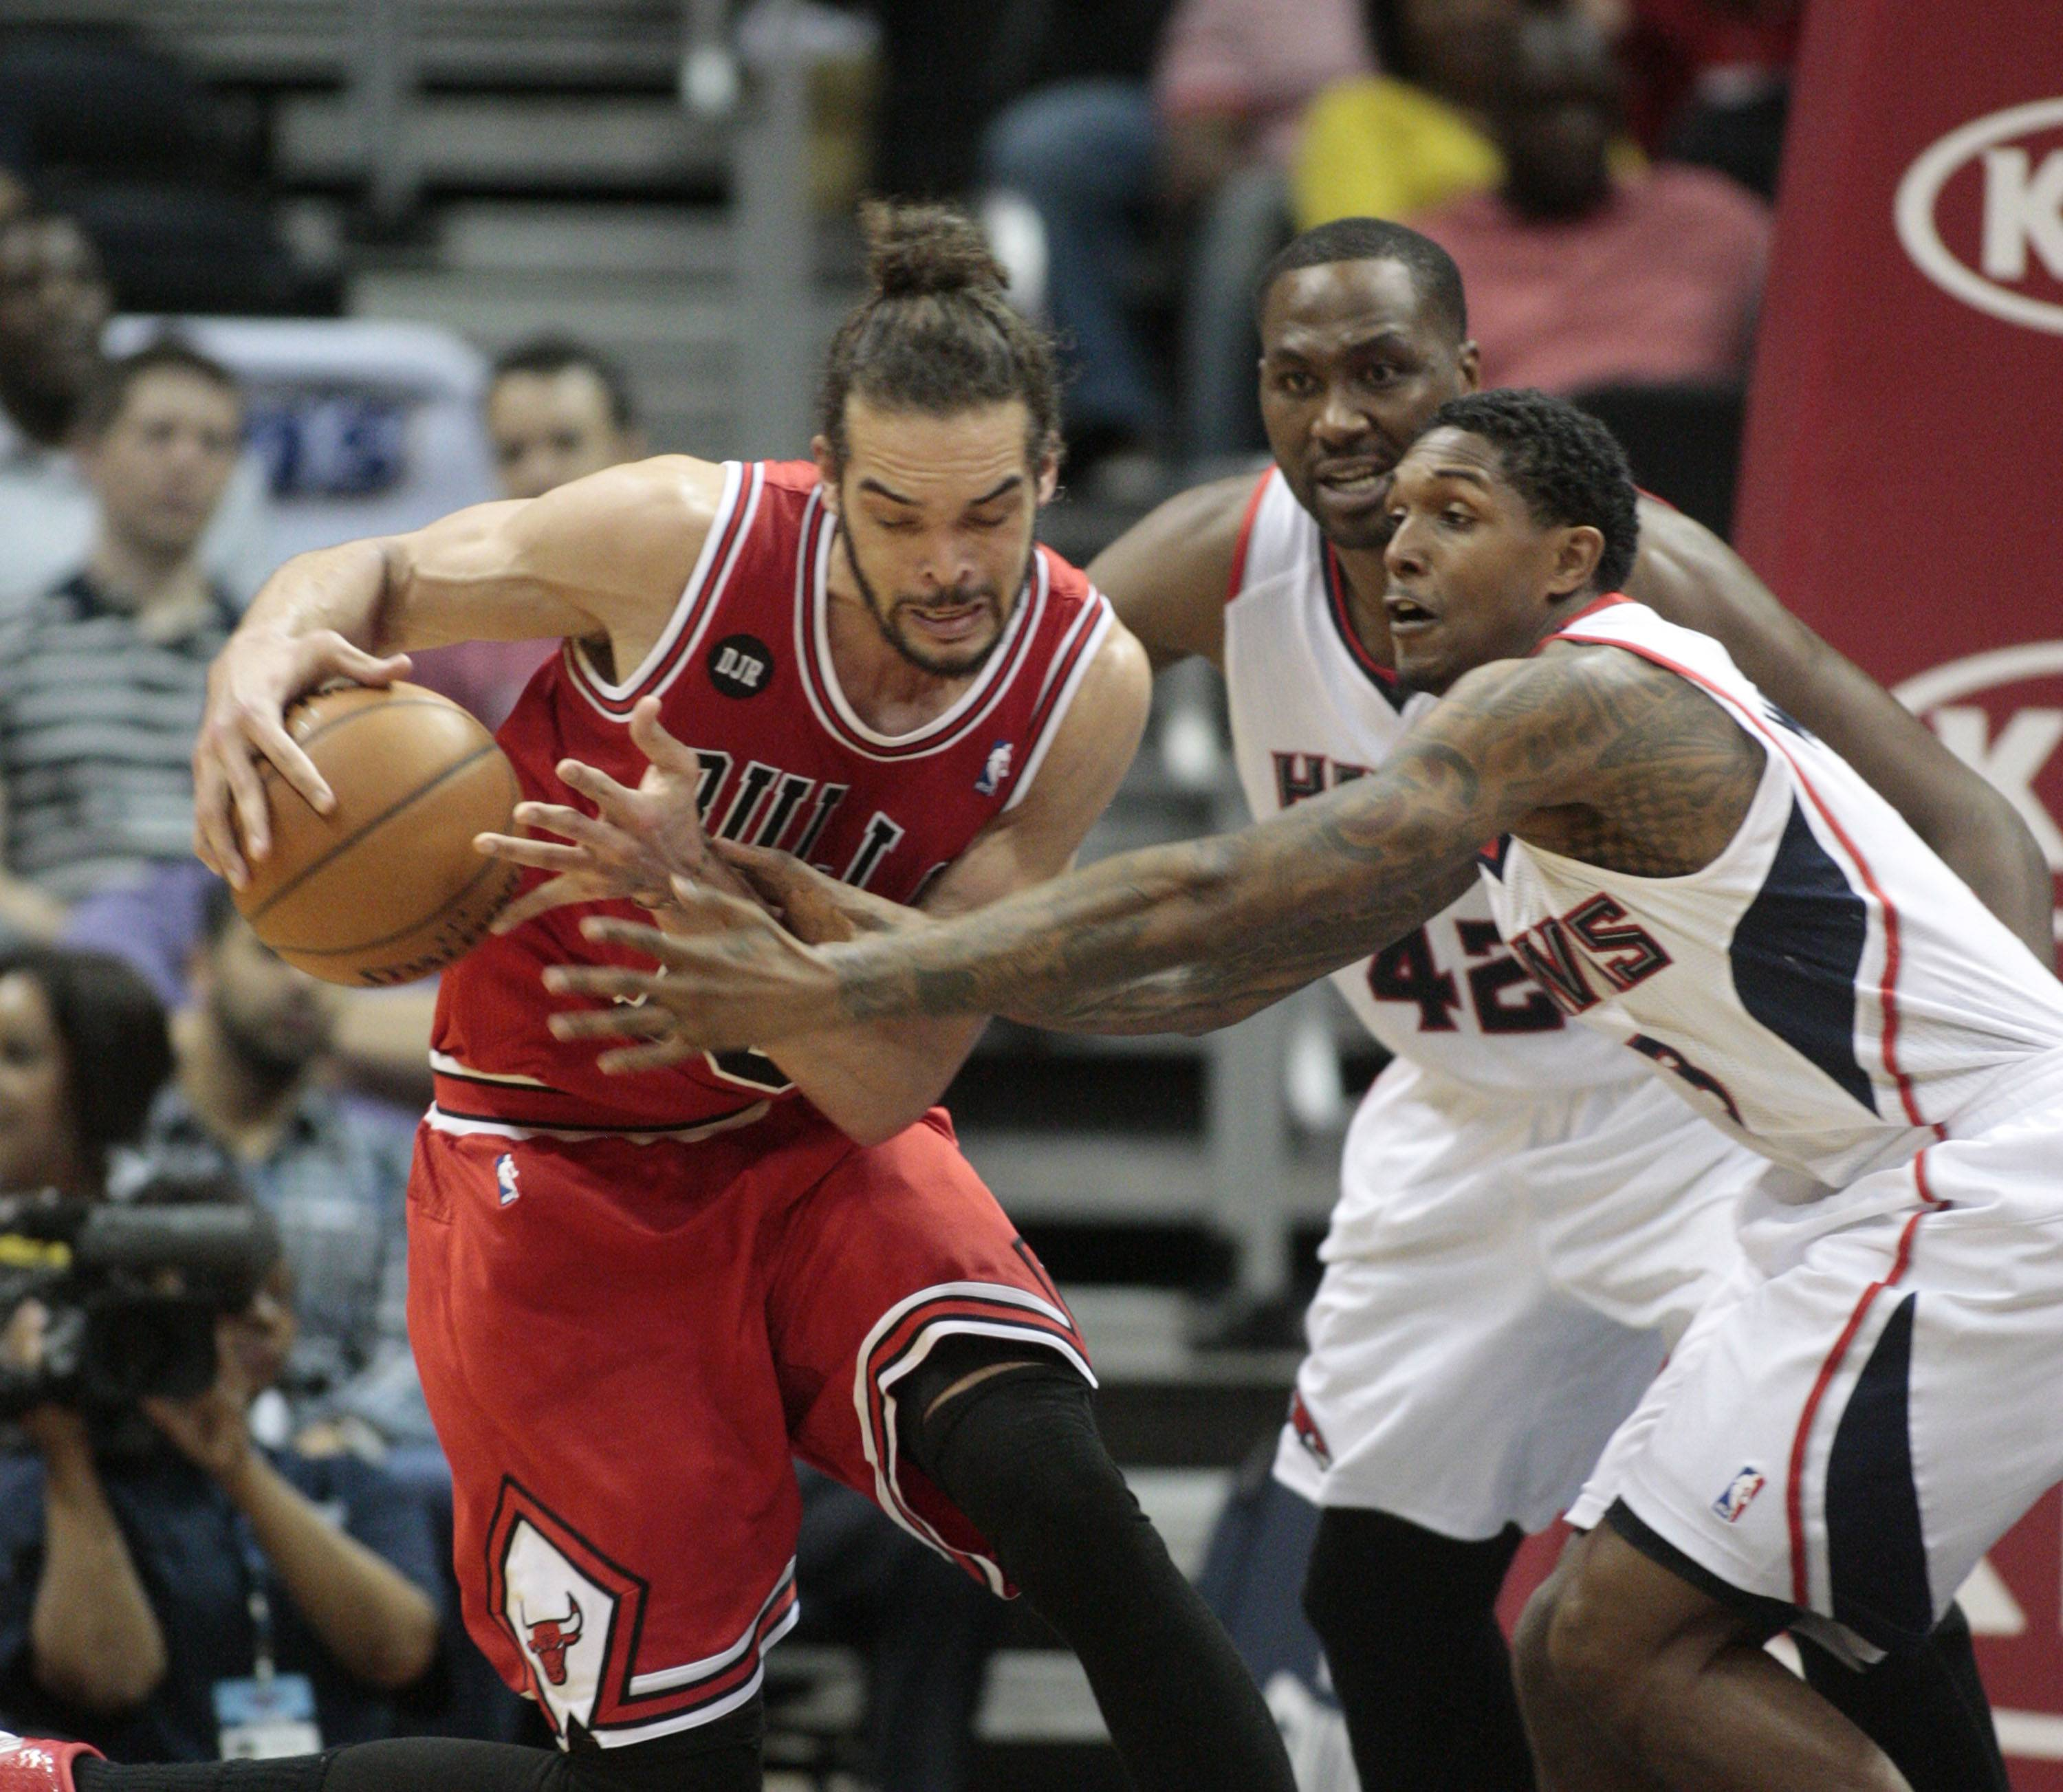 Joakim Noah has played the most total minutes on the Bulls this season, ranking 21st in the NBA with 2,660.